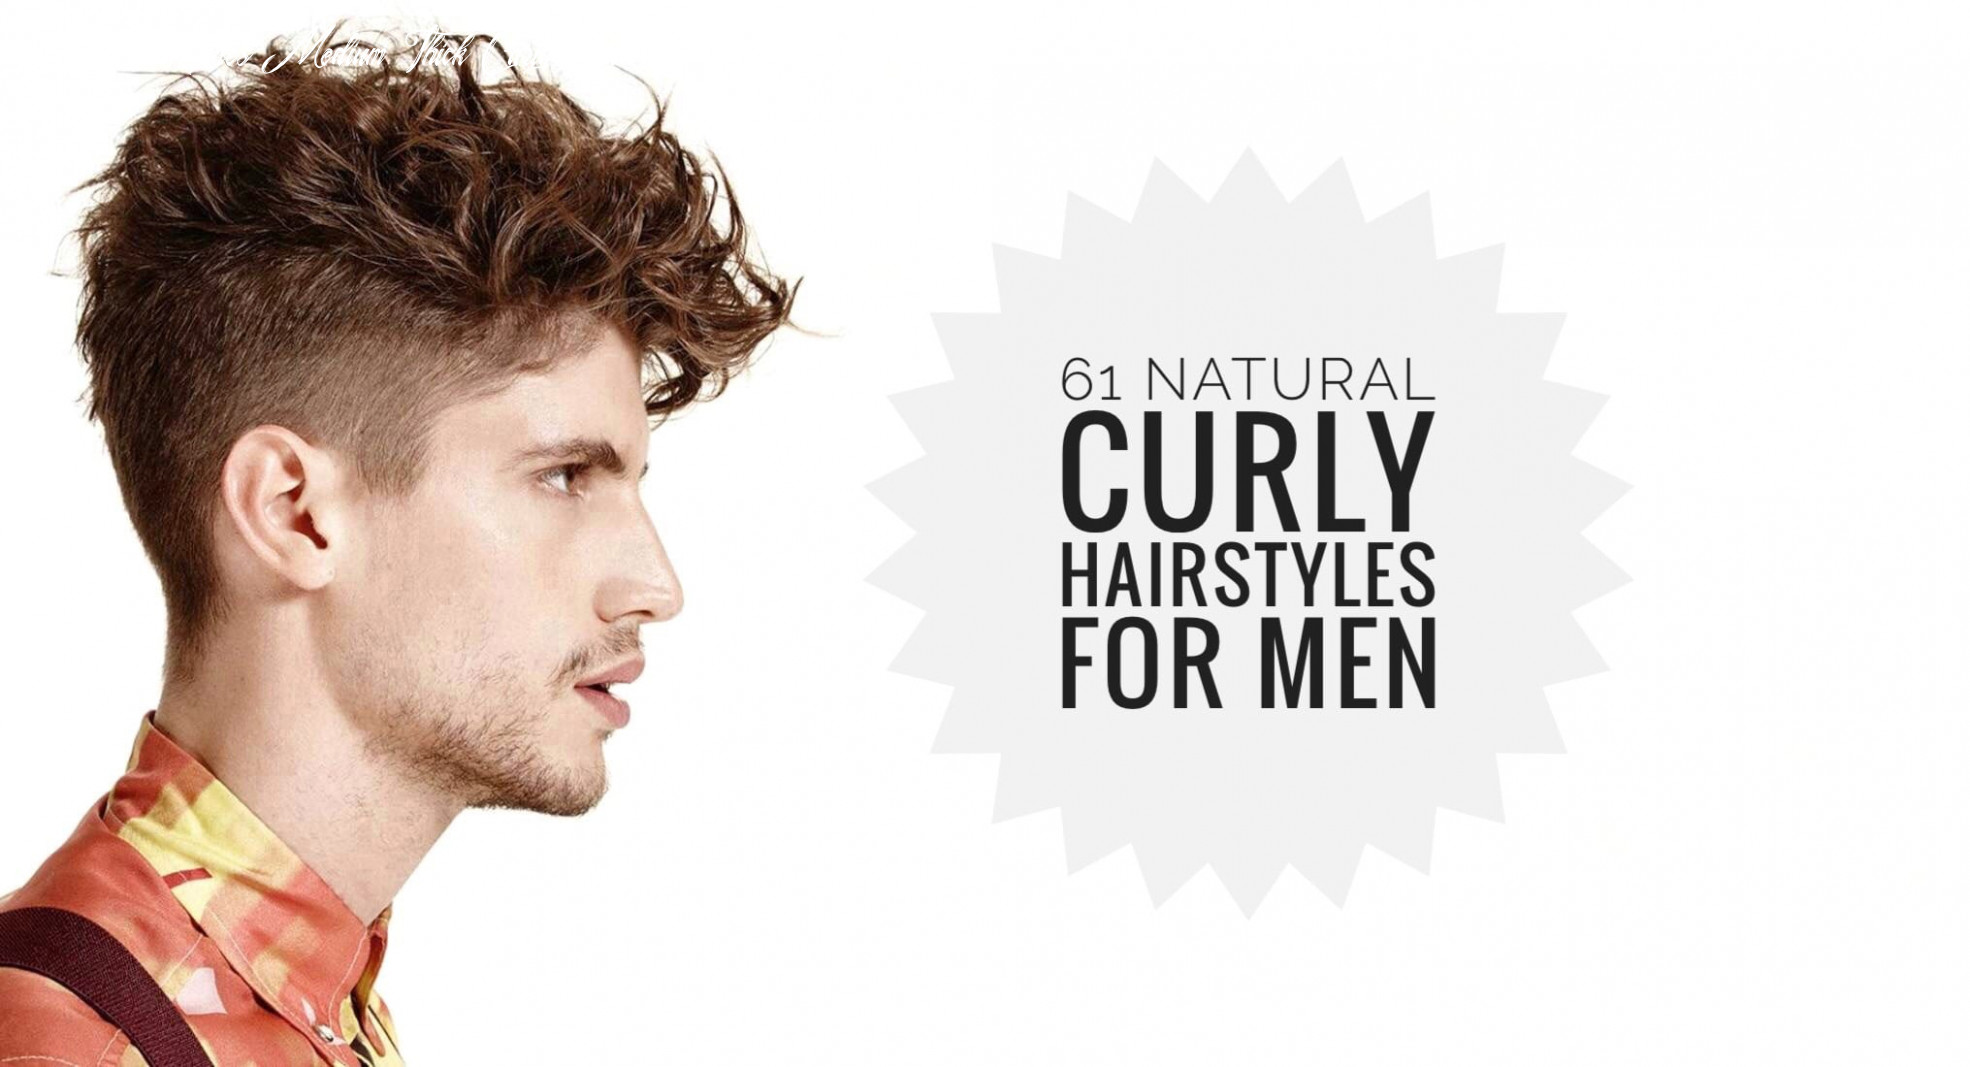 12 curly hairstyles for men to style those curls men hairstyles